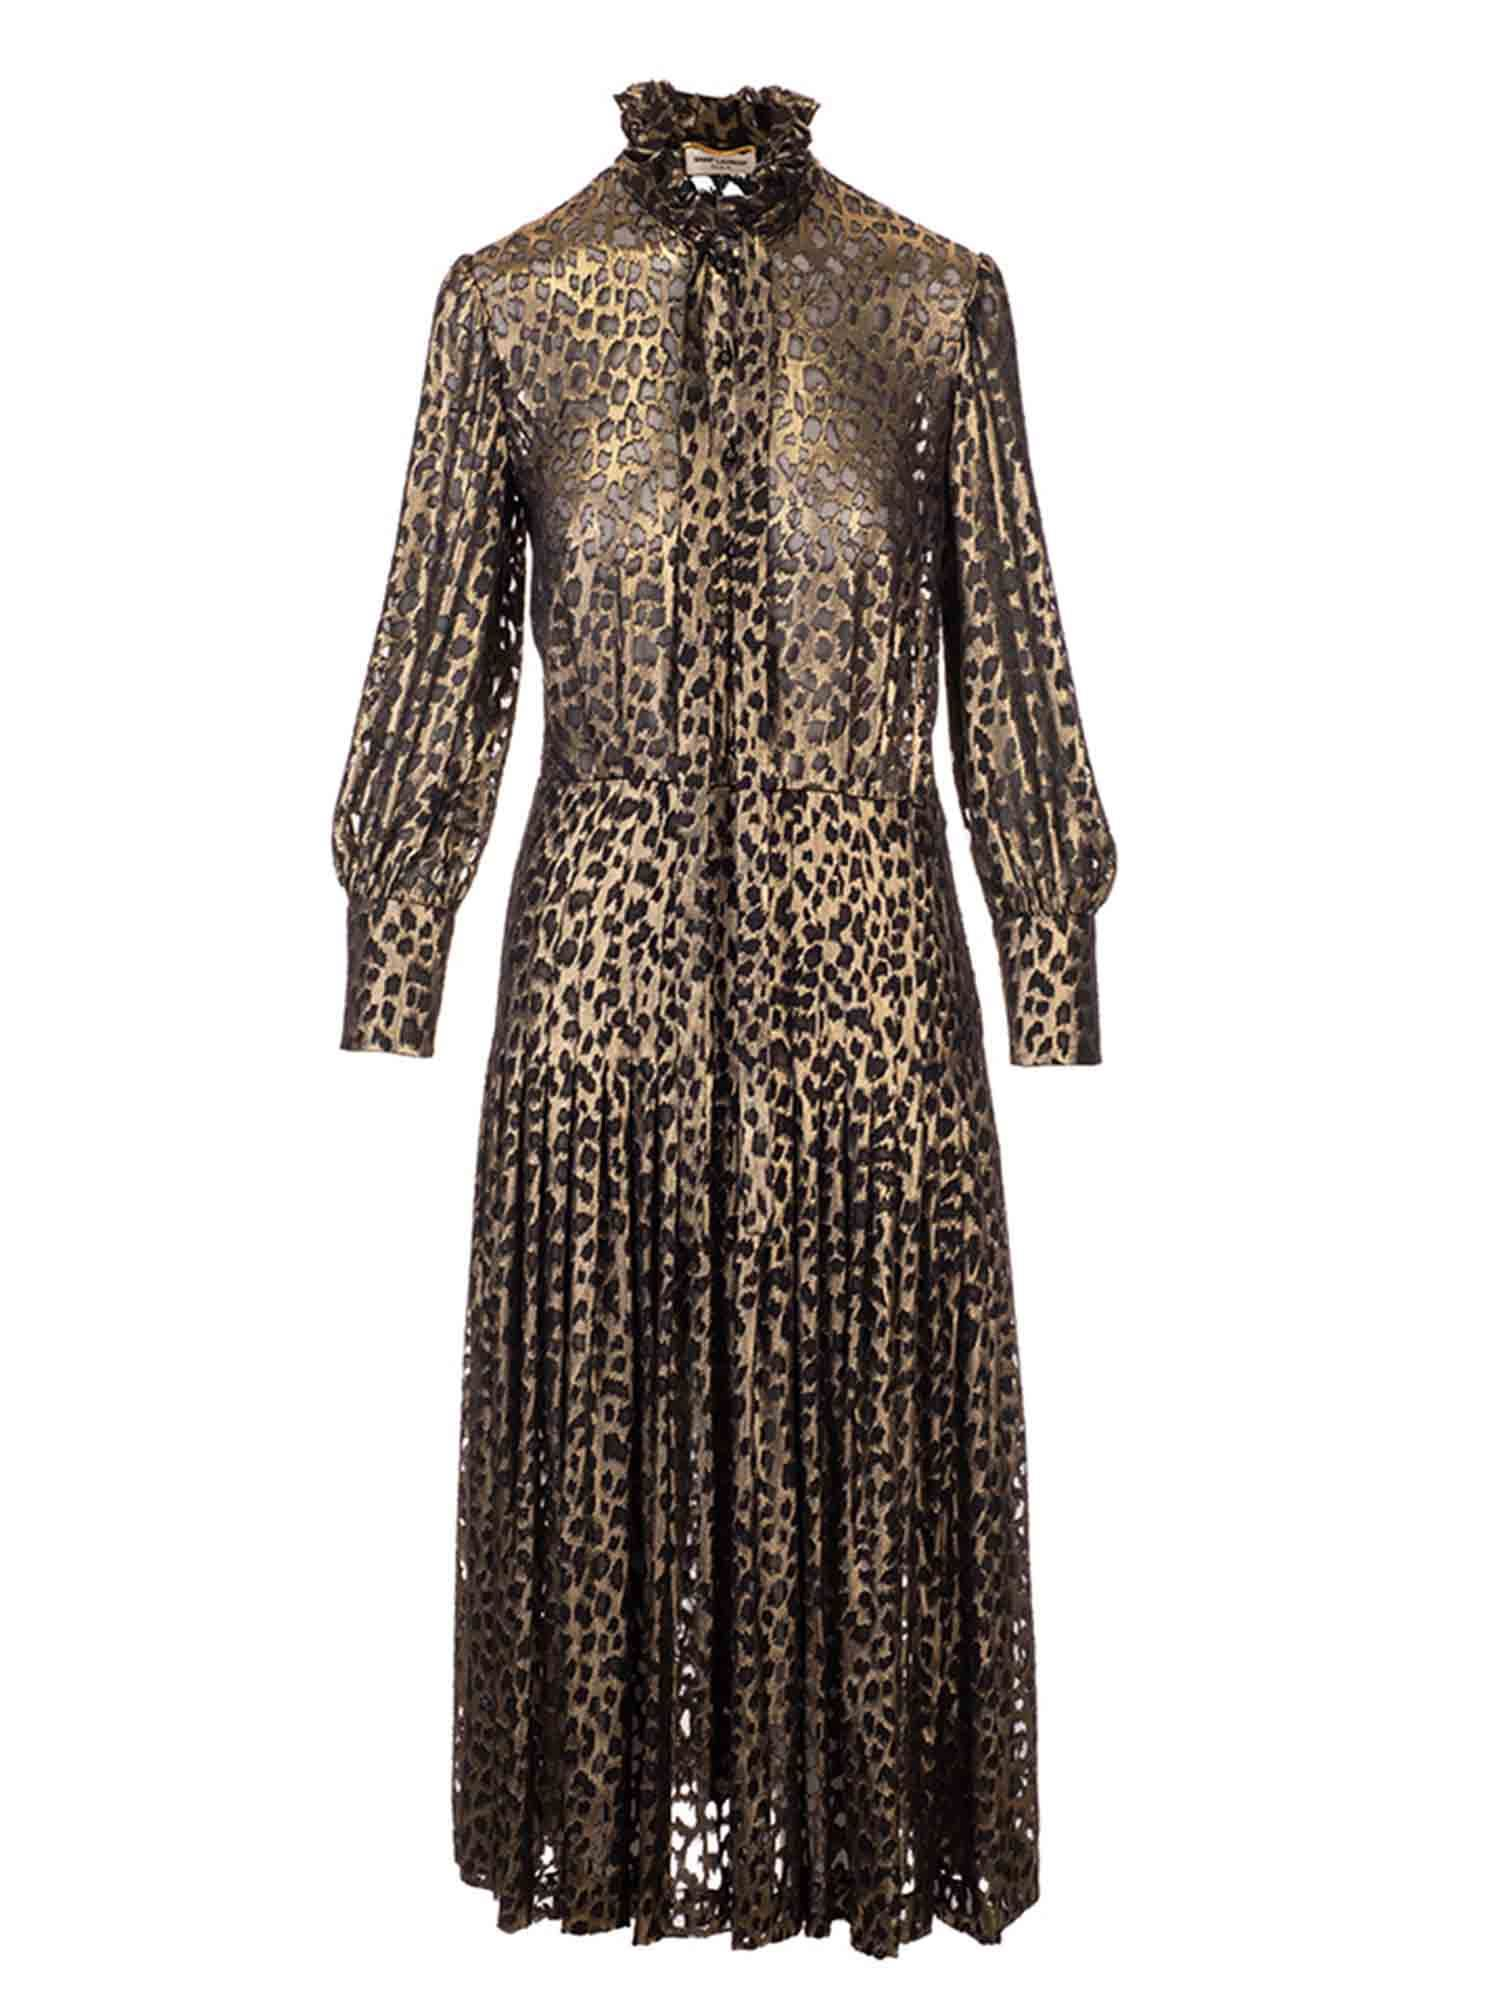 Saint Laurent LONG METALLIC ANIMALIER DRESS